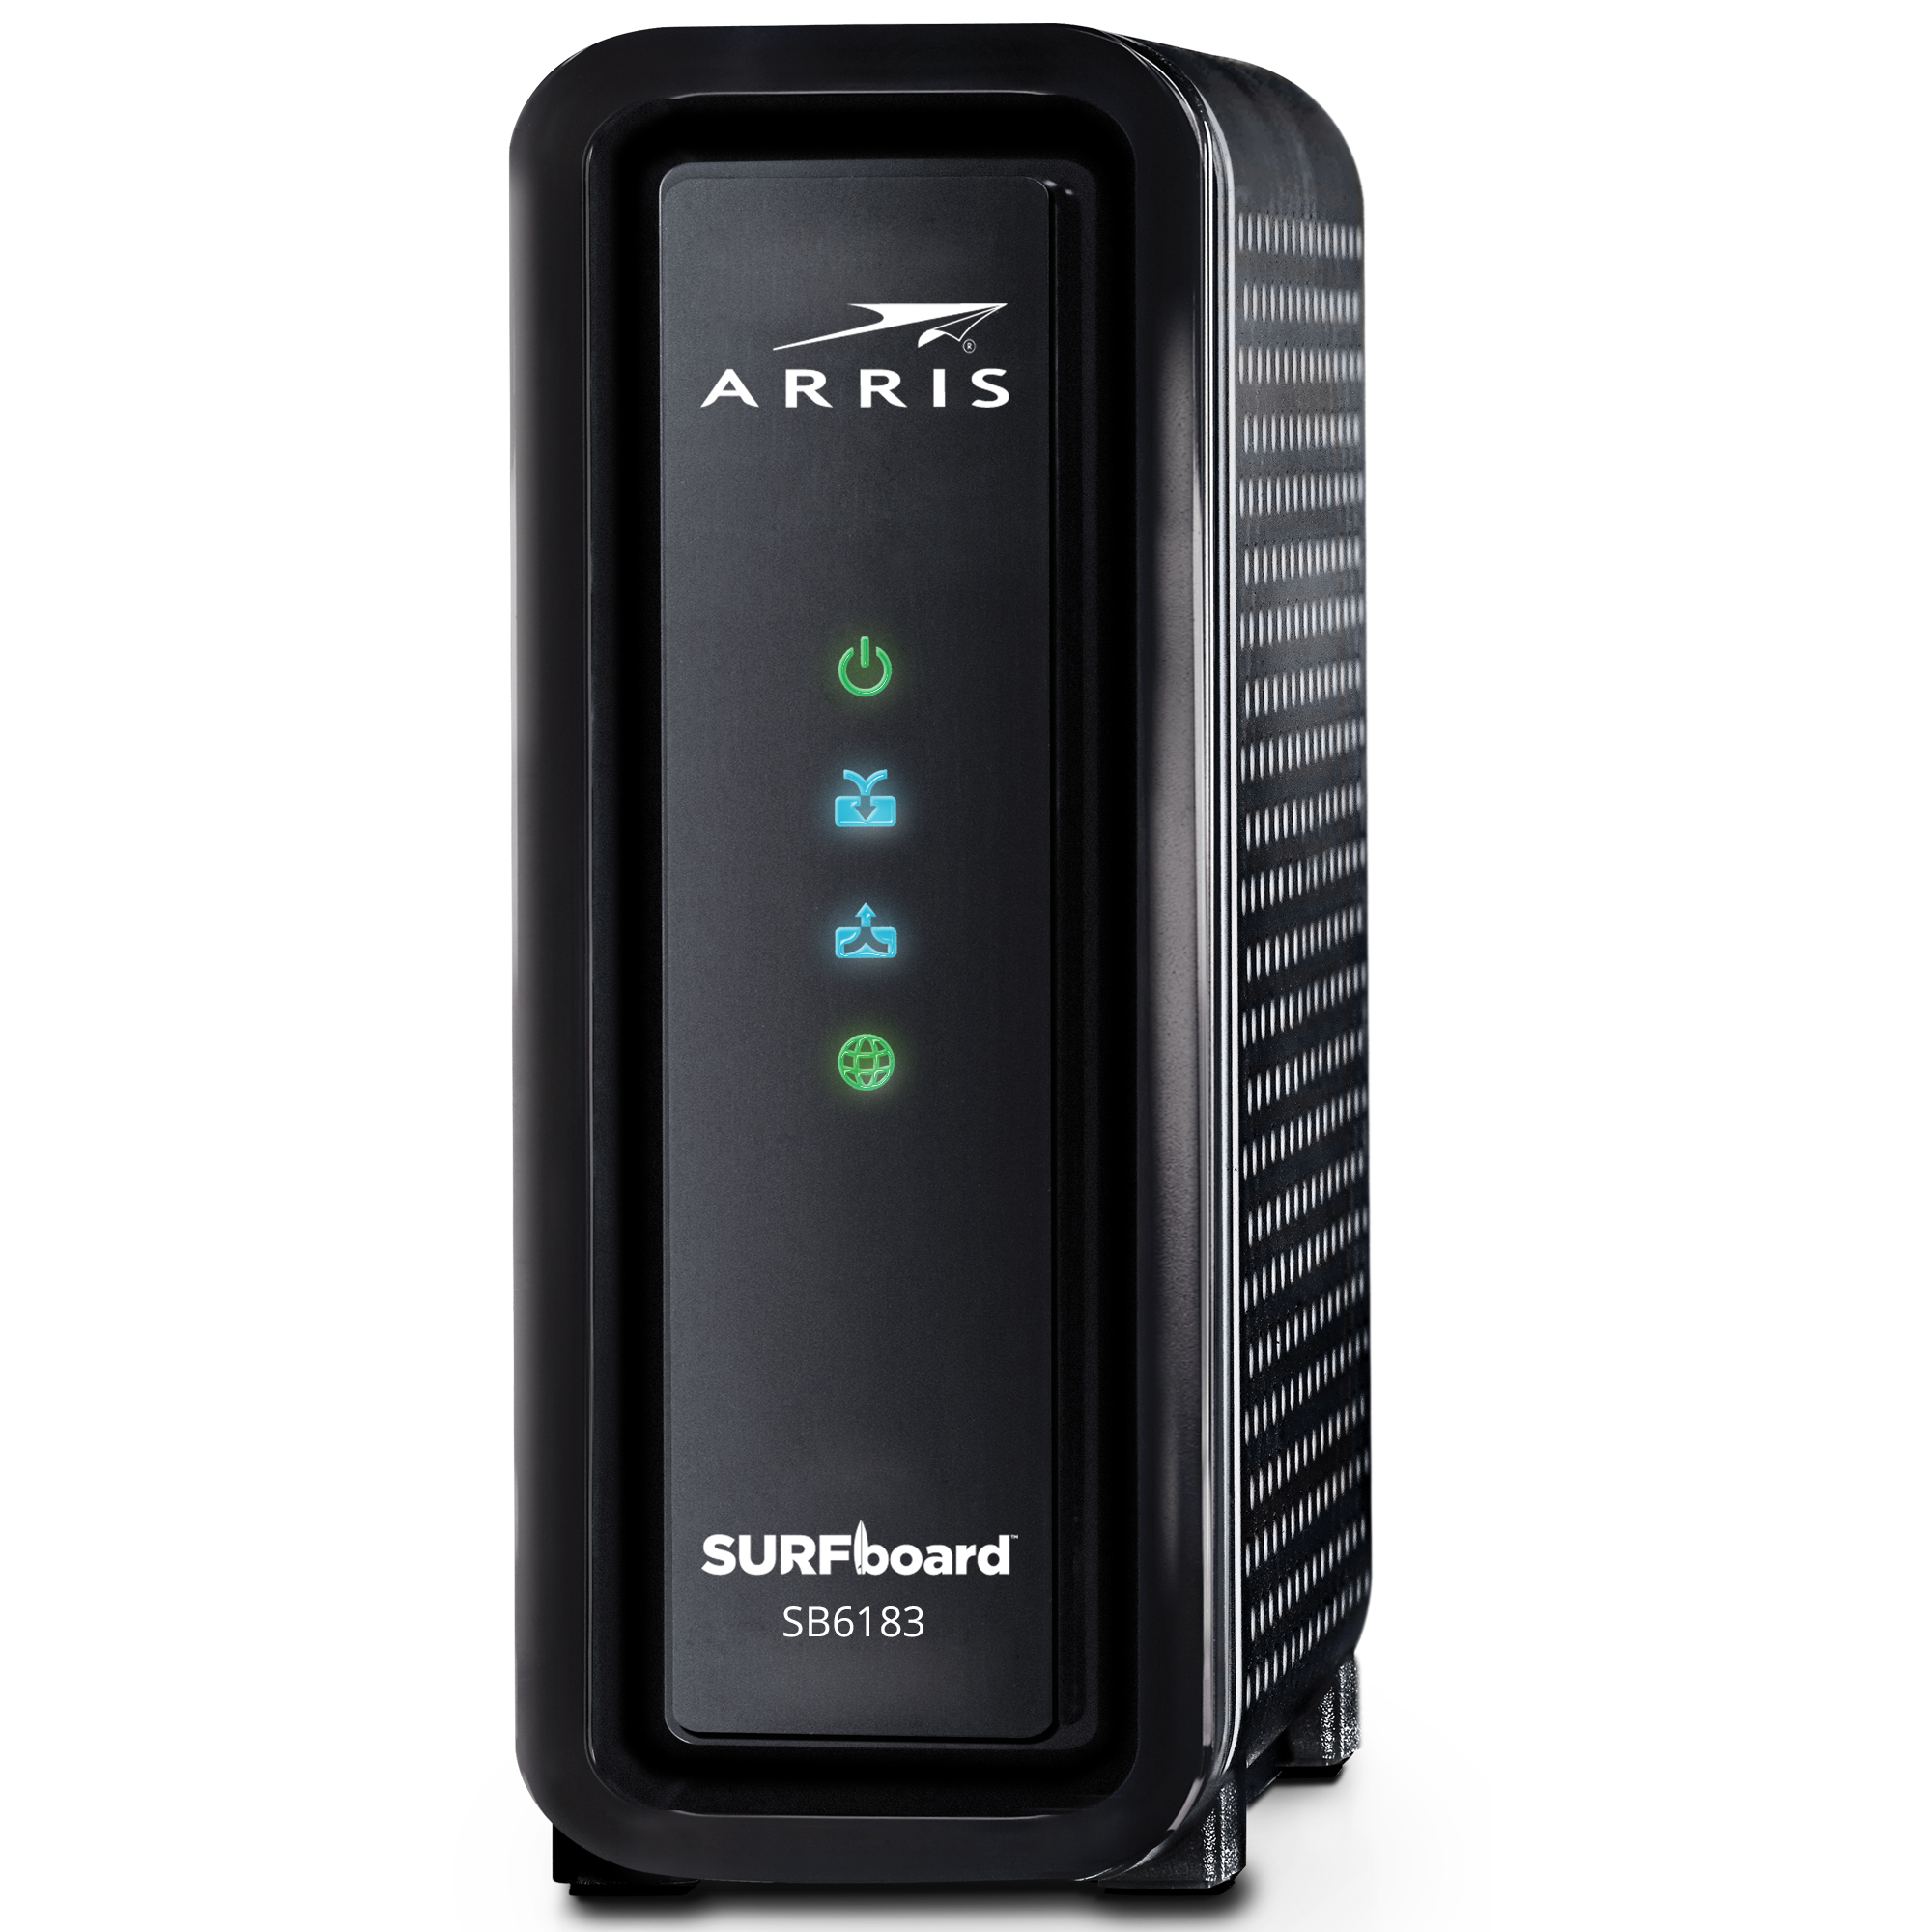 Retail Packaging White ARRIS SURFboard SB6183 DOCSIS 3.0 16x4 Cable Modem